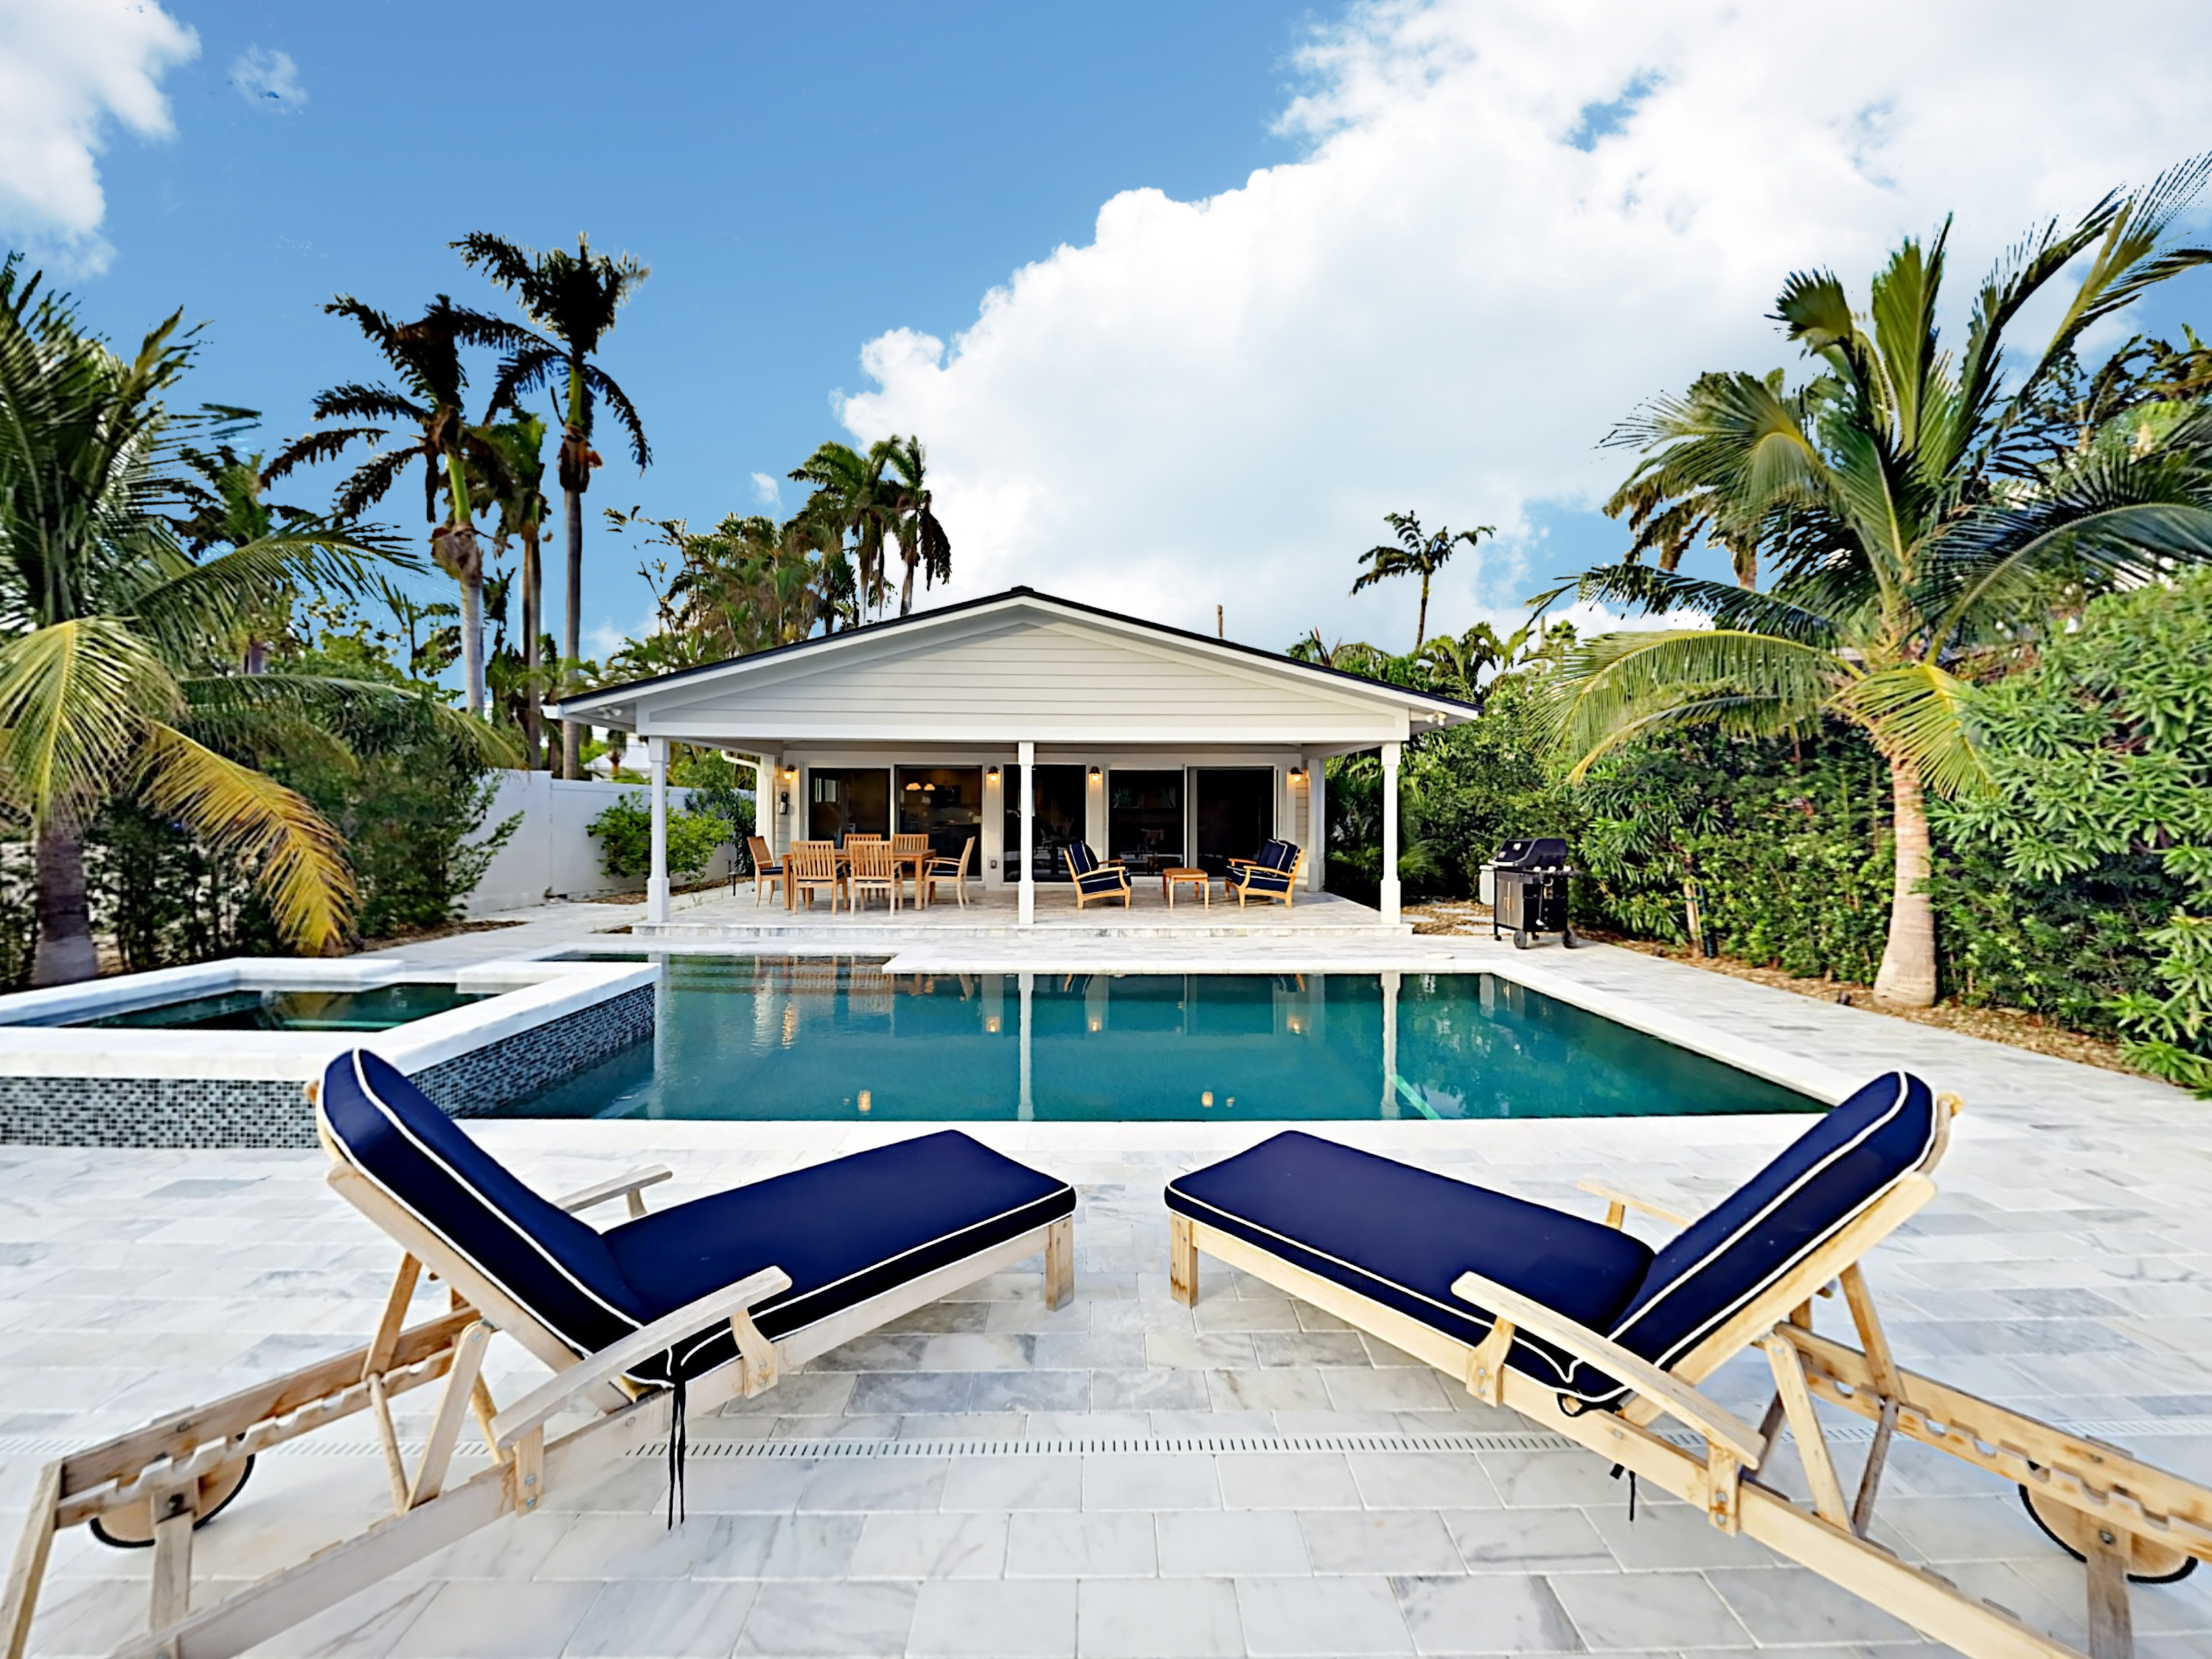 Fort Lauderdale FL Vacation Rental Welcome to your